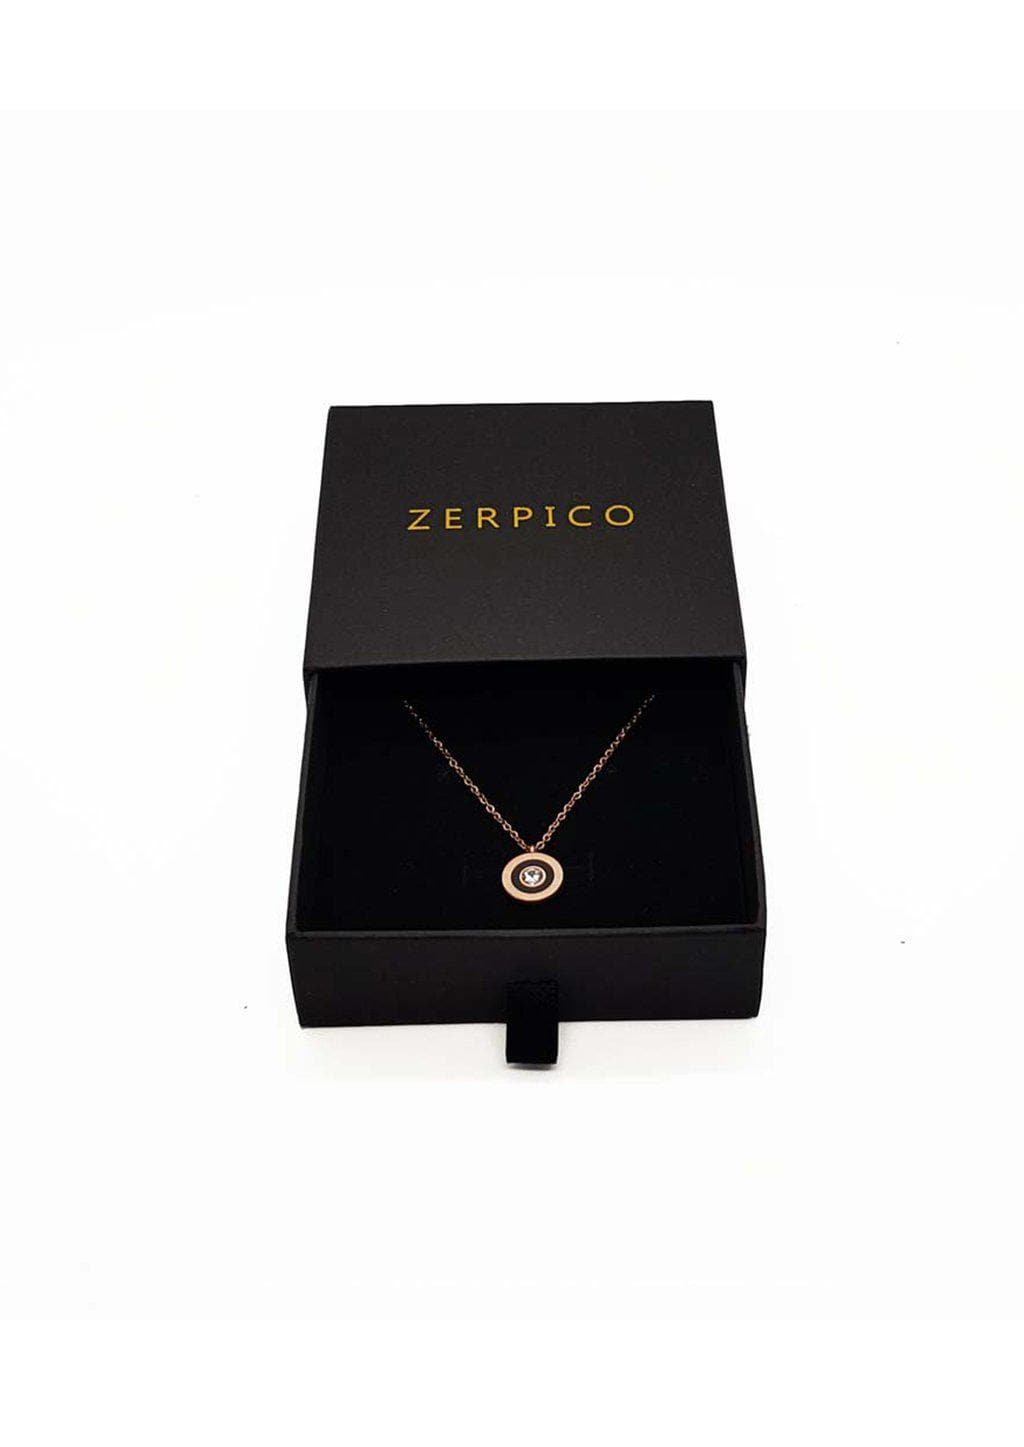 Jericho Rosé Gold Necklace - zerpico